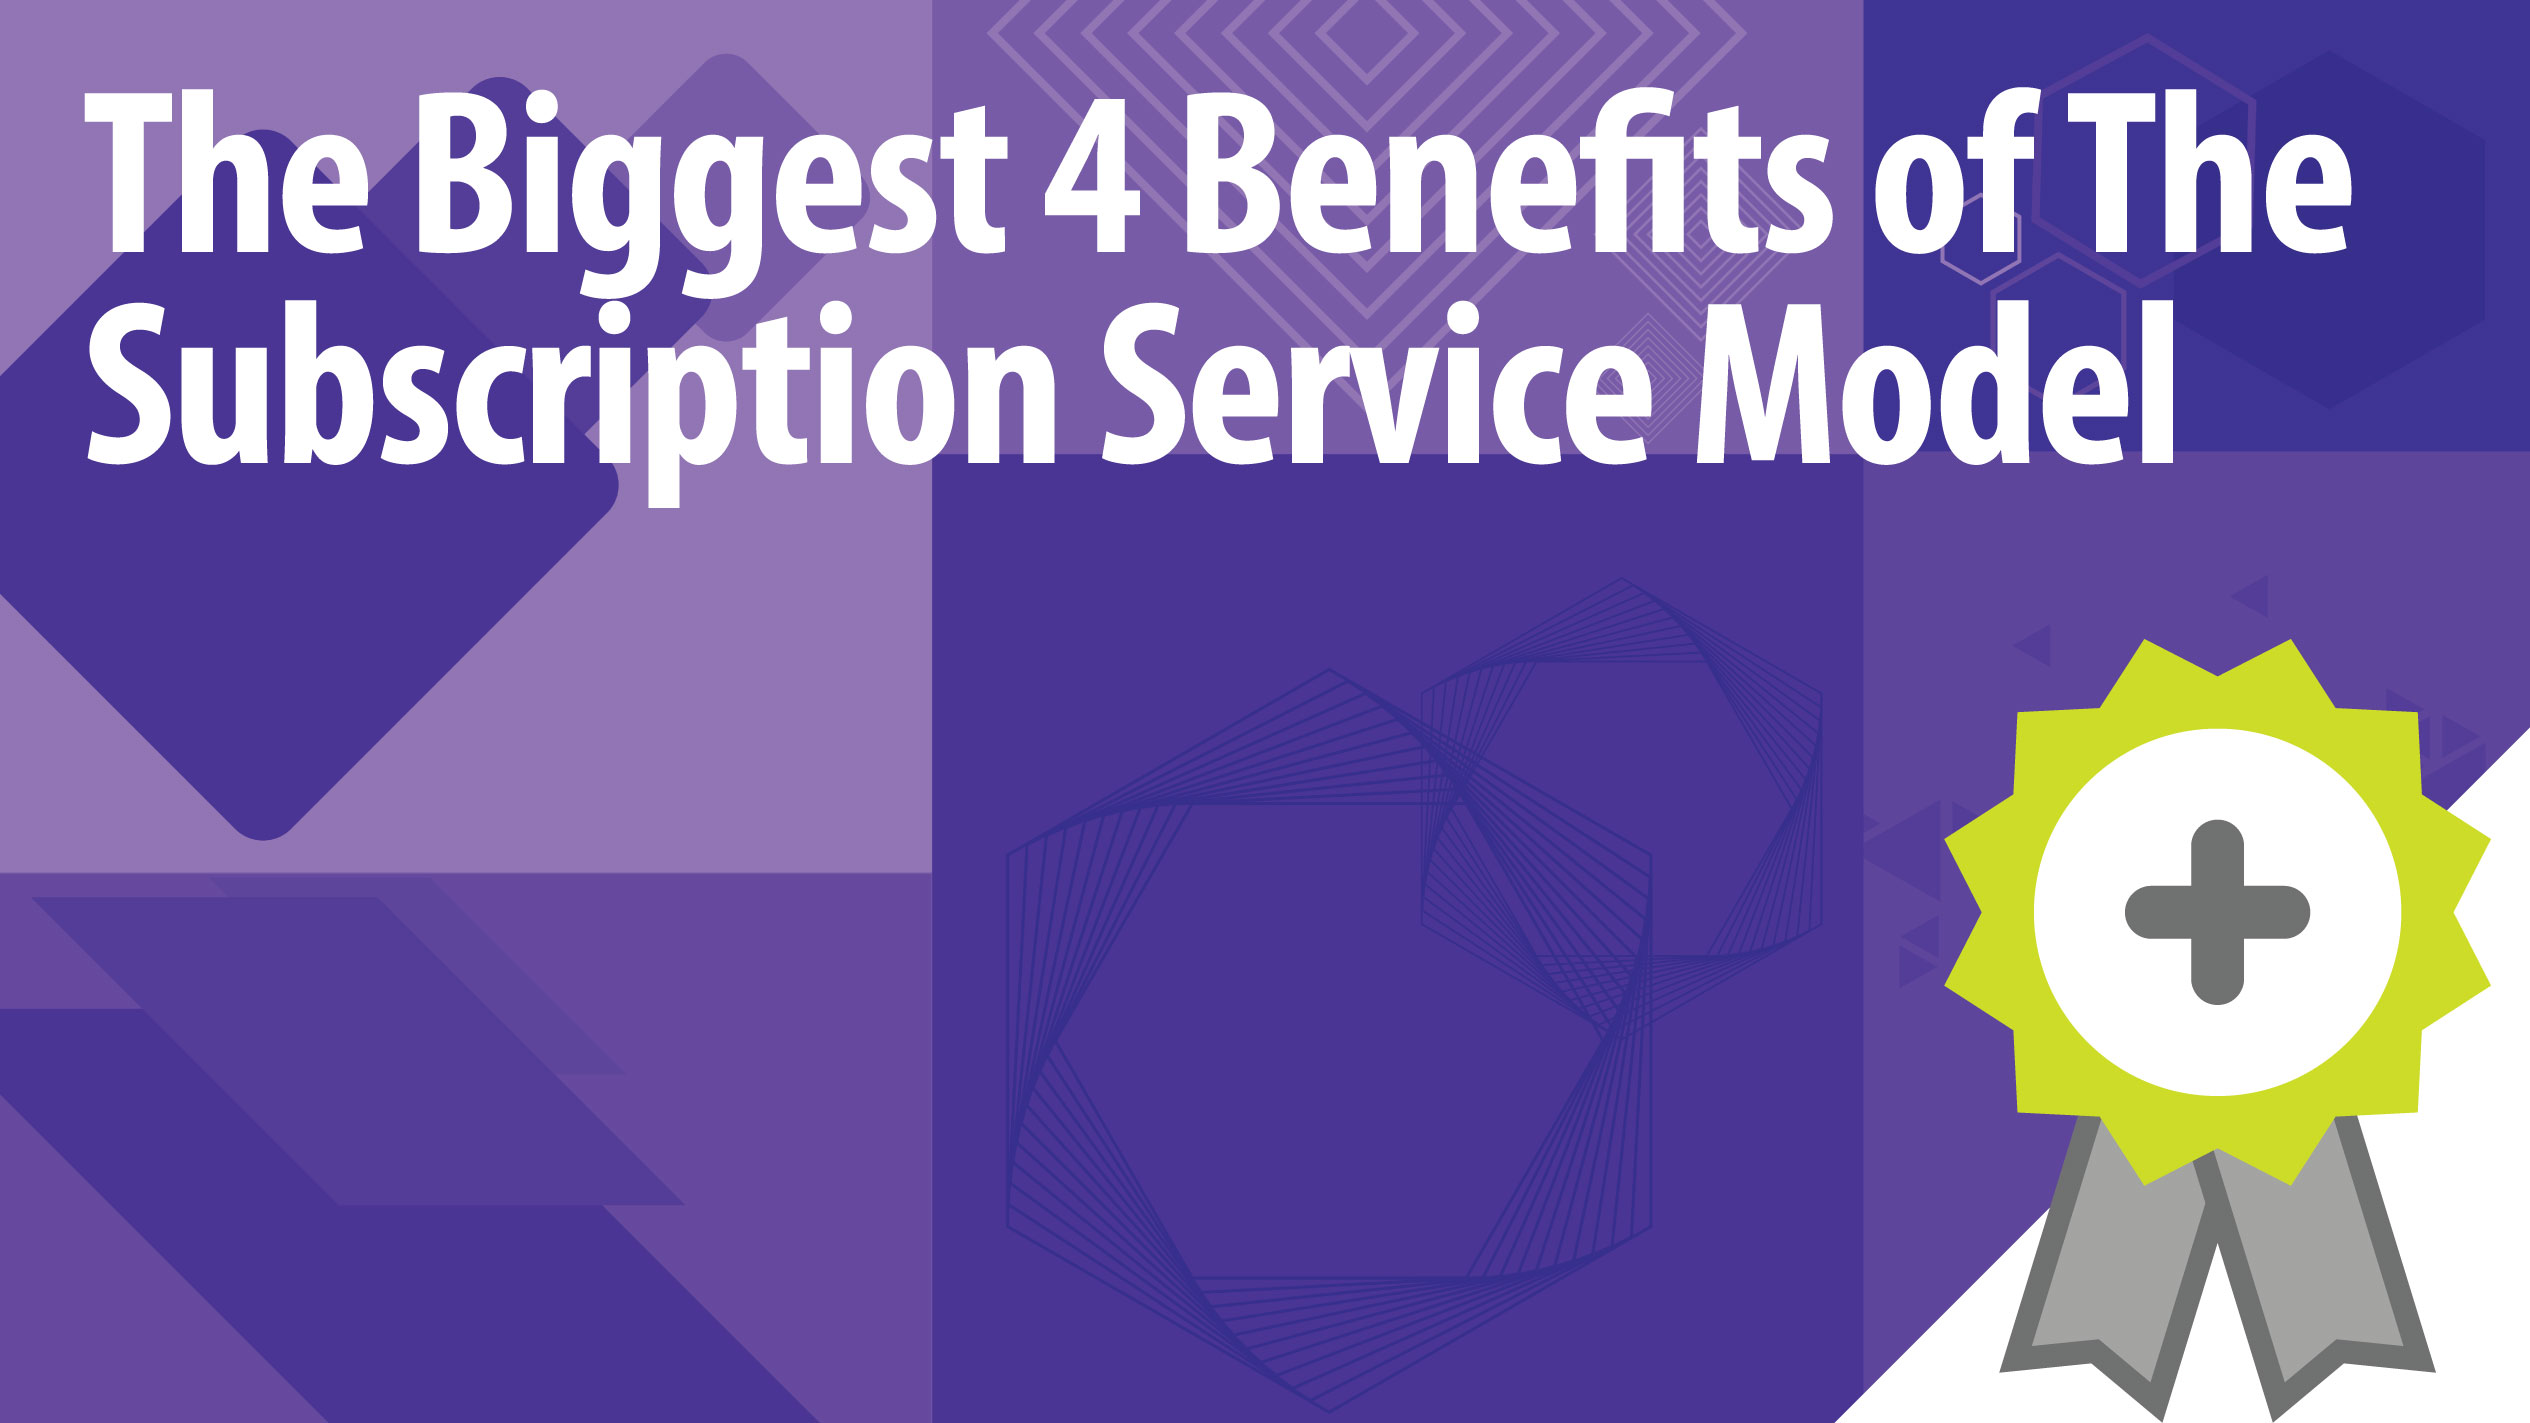 The Biggest 4 Benefits of The Subscription Service Model